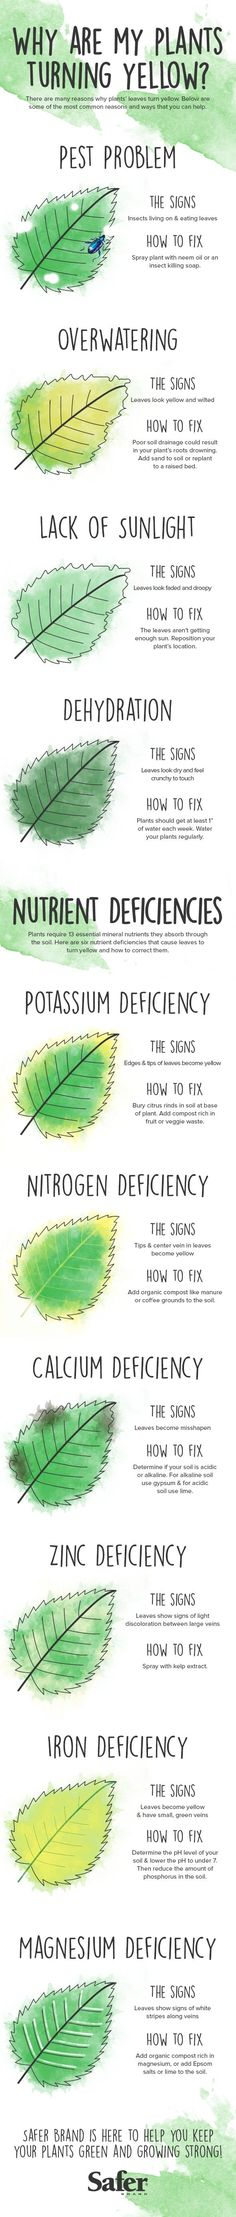 Why are my plants turning yellow? If your vegetable garden or house plants have gone from verdant to flavescent, it could be a sign of health issues like too much water or too few nutrients. A new infographic offers tips for getting to the root of the problem. #gardening #garden #plants #planting #leaves #greenthumb